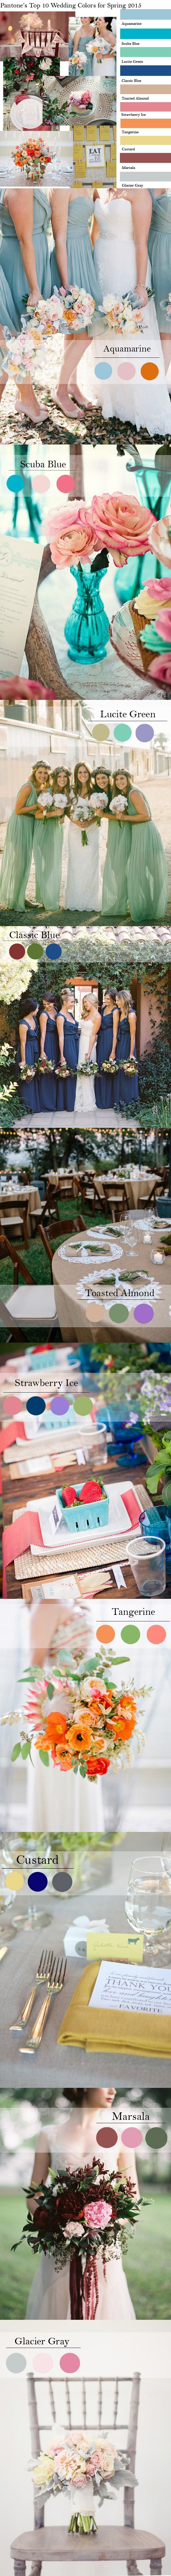 top 10 Pantone fashion wedding color inspiration